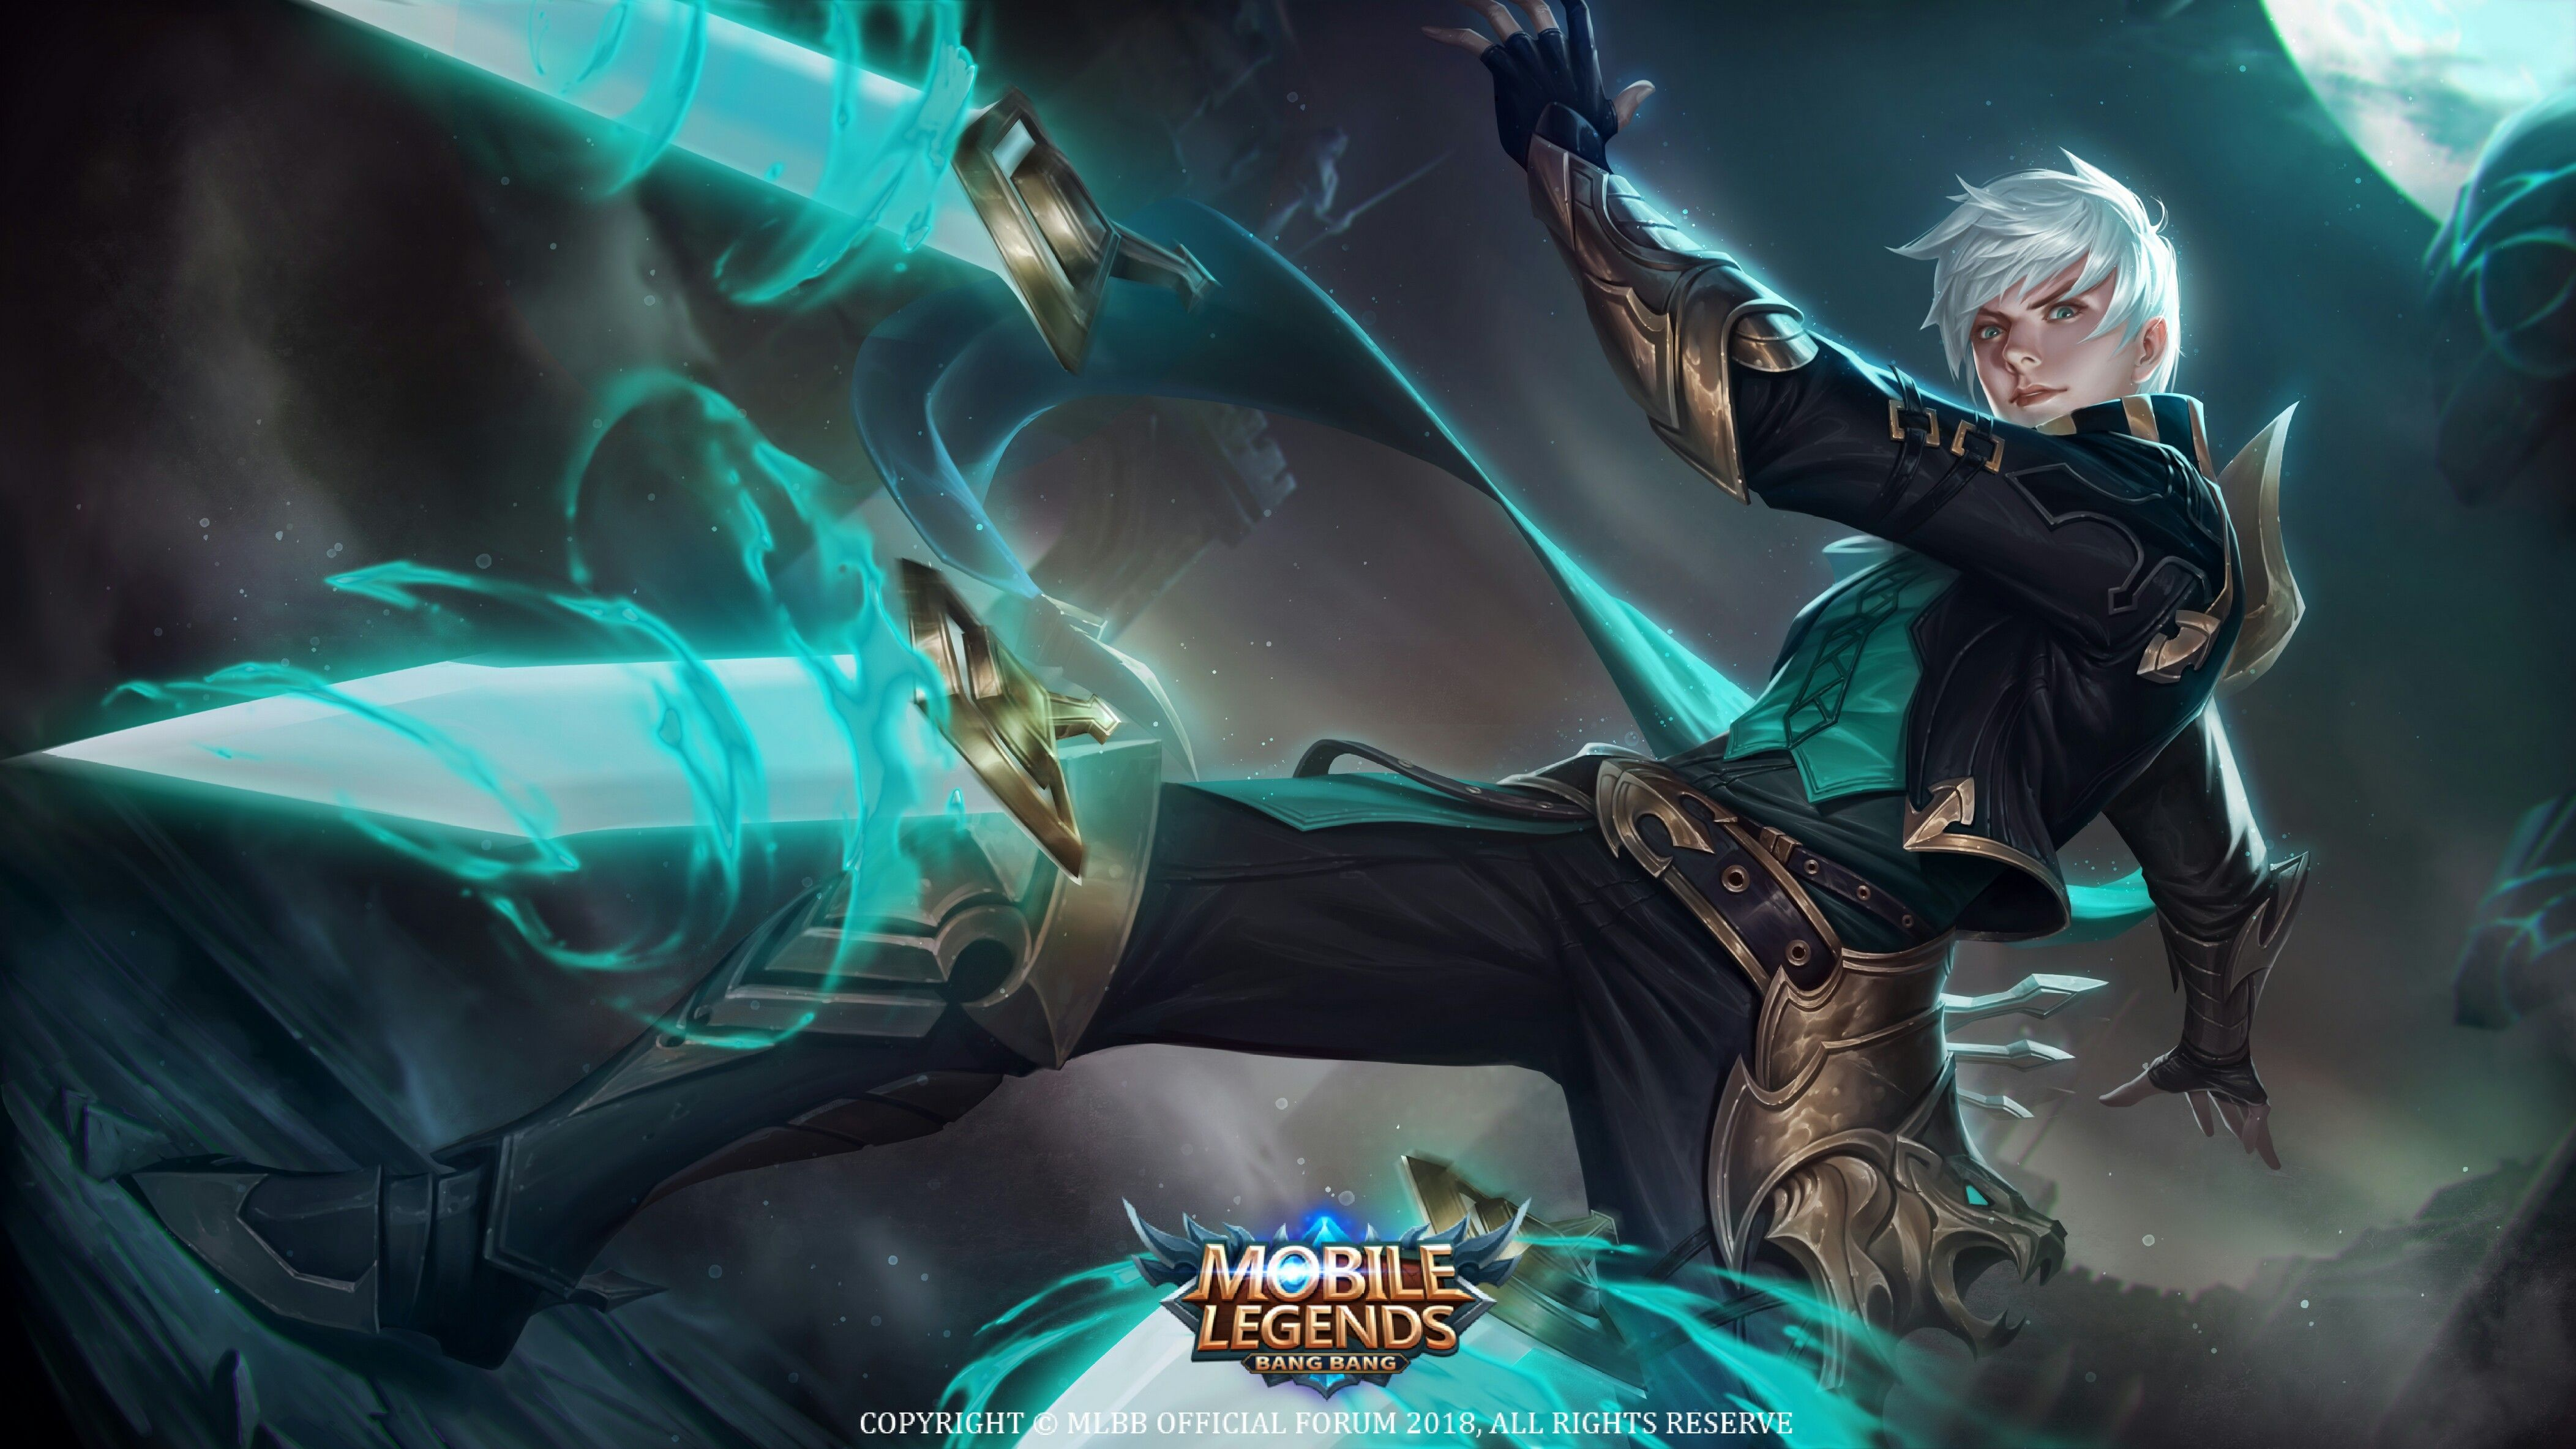 Mobile Legends All Heroes Wallpapers Wallpaper Cave